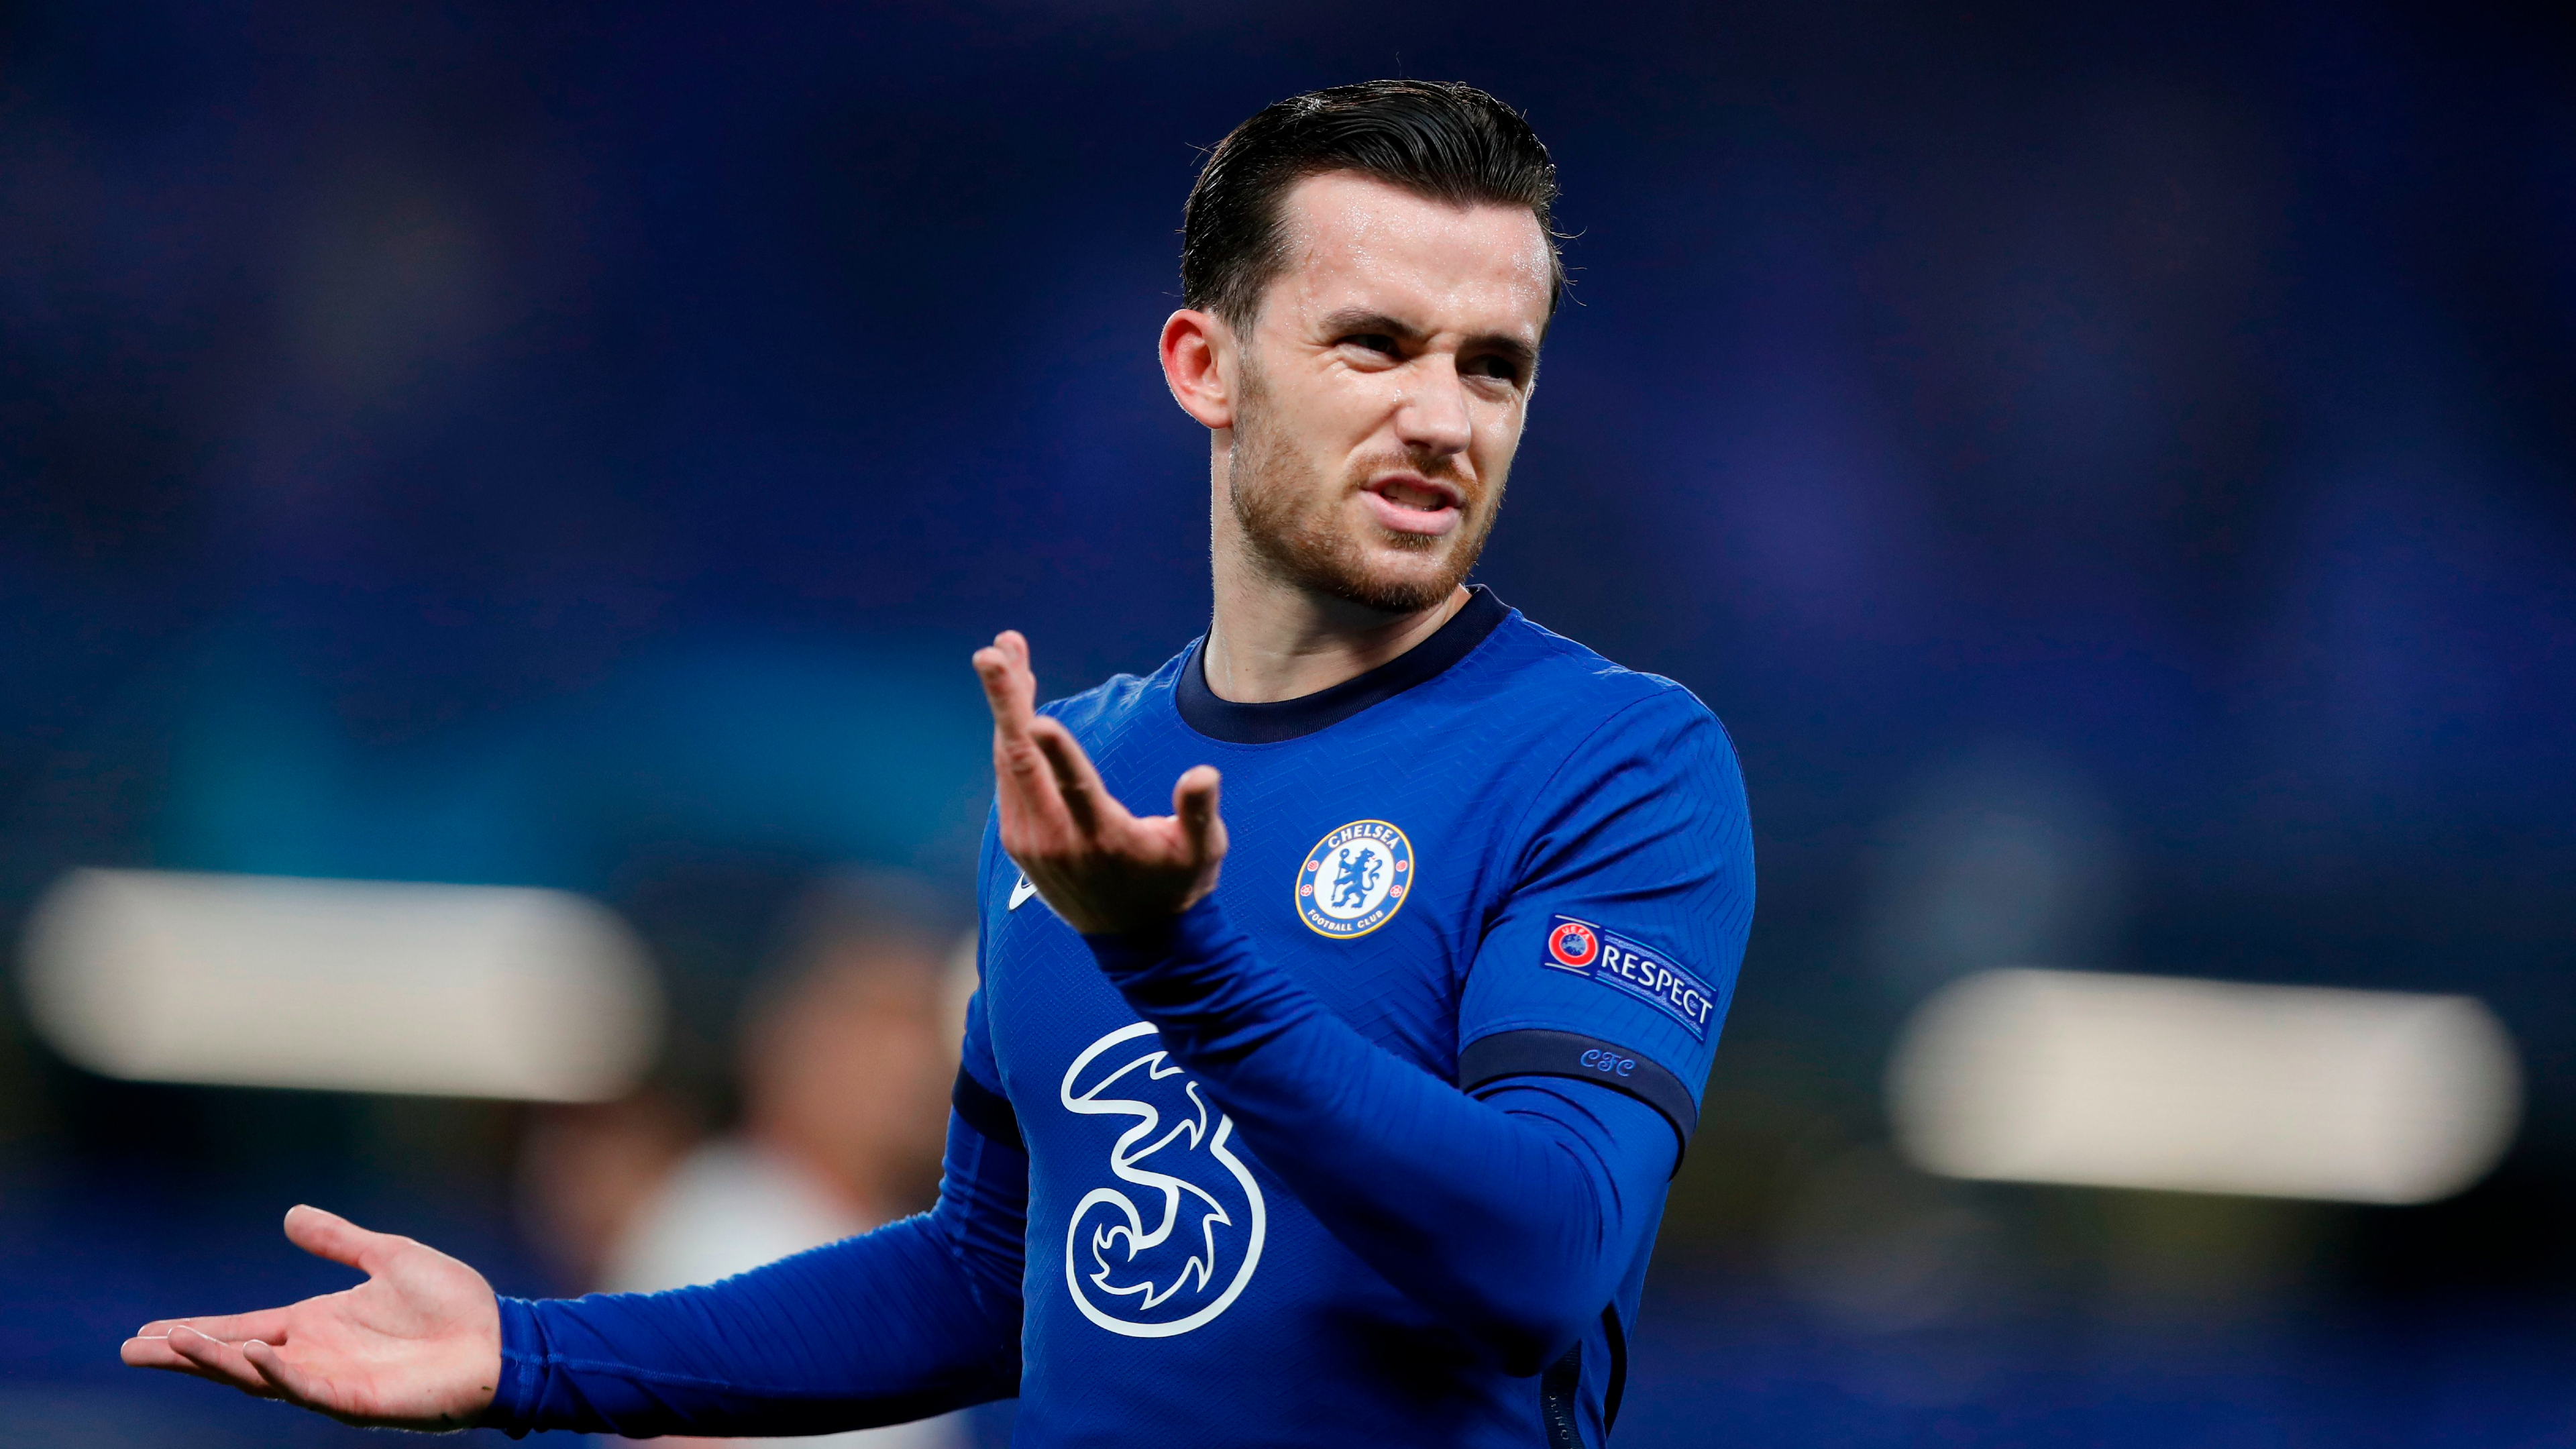 Chilwell warned Chelsea spell already 'questionable' as Tuchel favours Alonso over £50m left-back